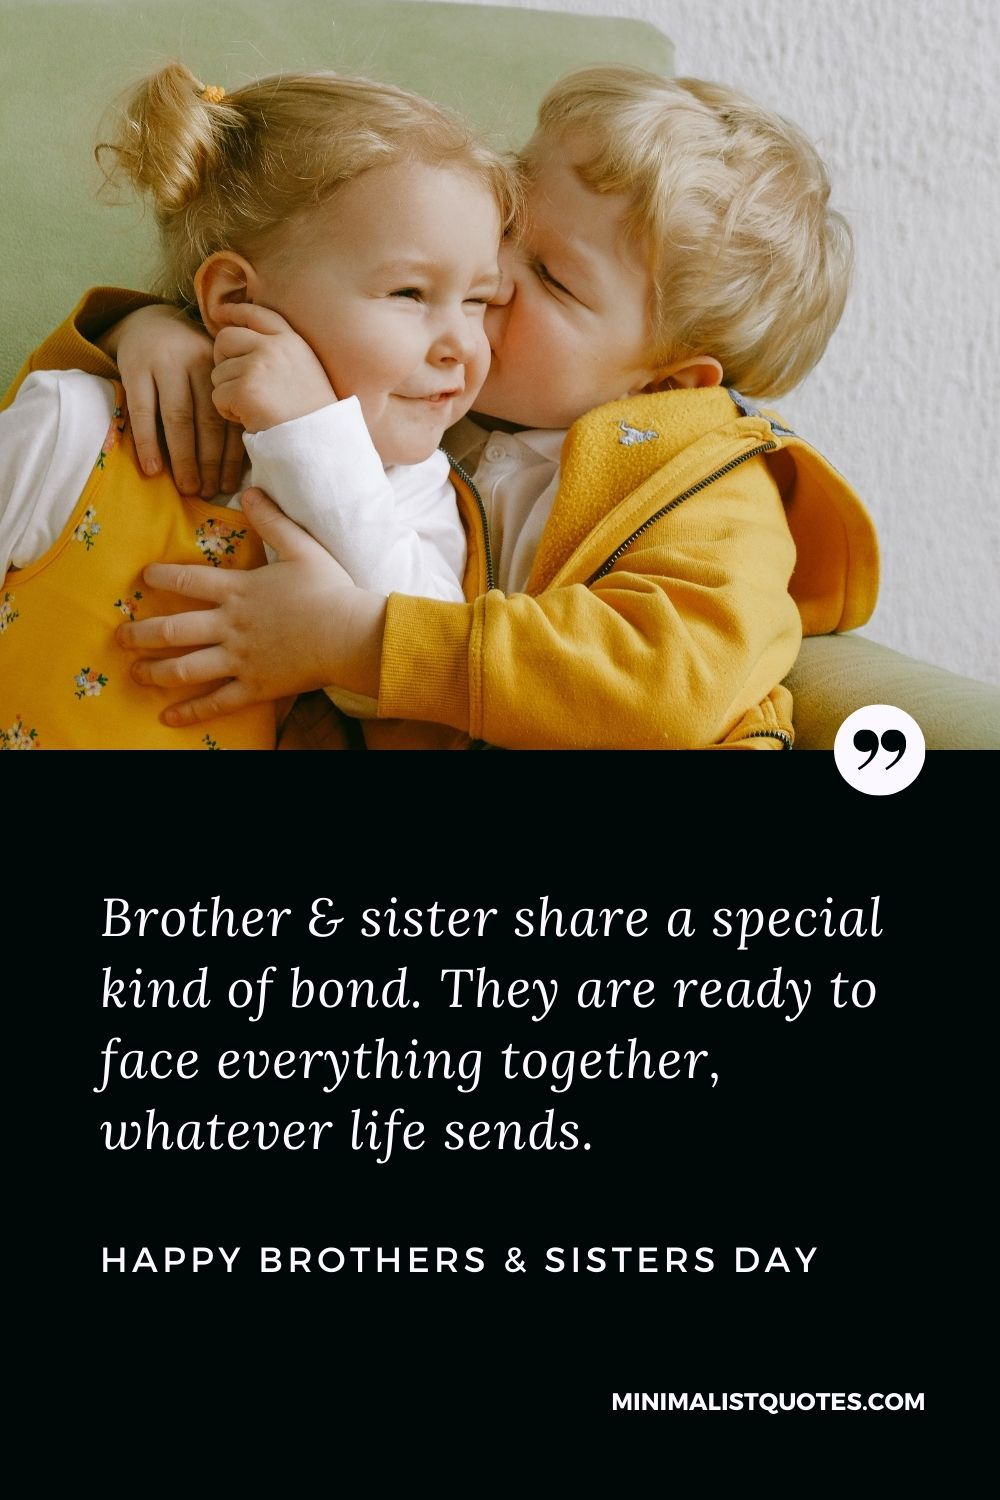 Brother's & Sister's Day Quote, Wish & Message With Image: Brother & sister share a special kind of bond. They are ready to face everything together,whateverlife sends. Happy Brothers & Sisters Day!